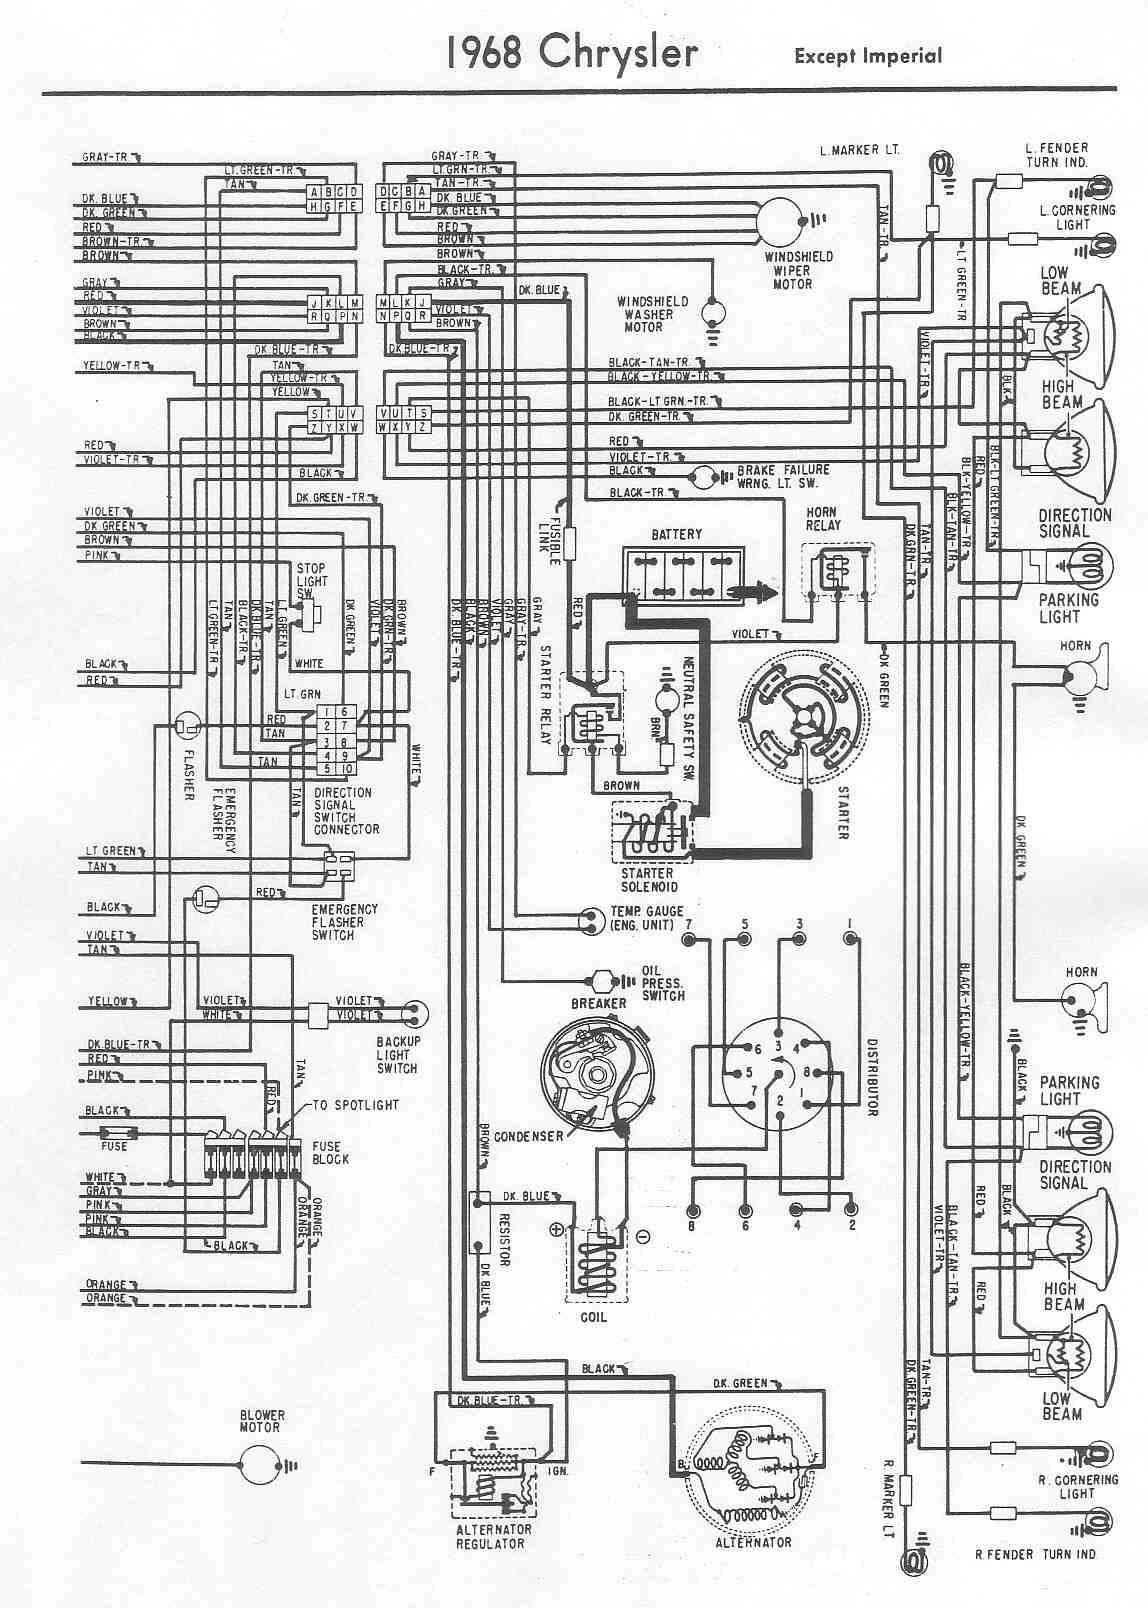 1959 chrysler wiring diagram schematics wiring diagrams u2022 rh seniorlivinguniversity co Dodge Ram 2500 Wiring Diagram 2001 Chrysler Sebring Wiring-Diagram